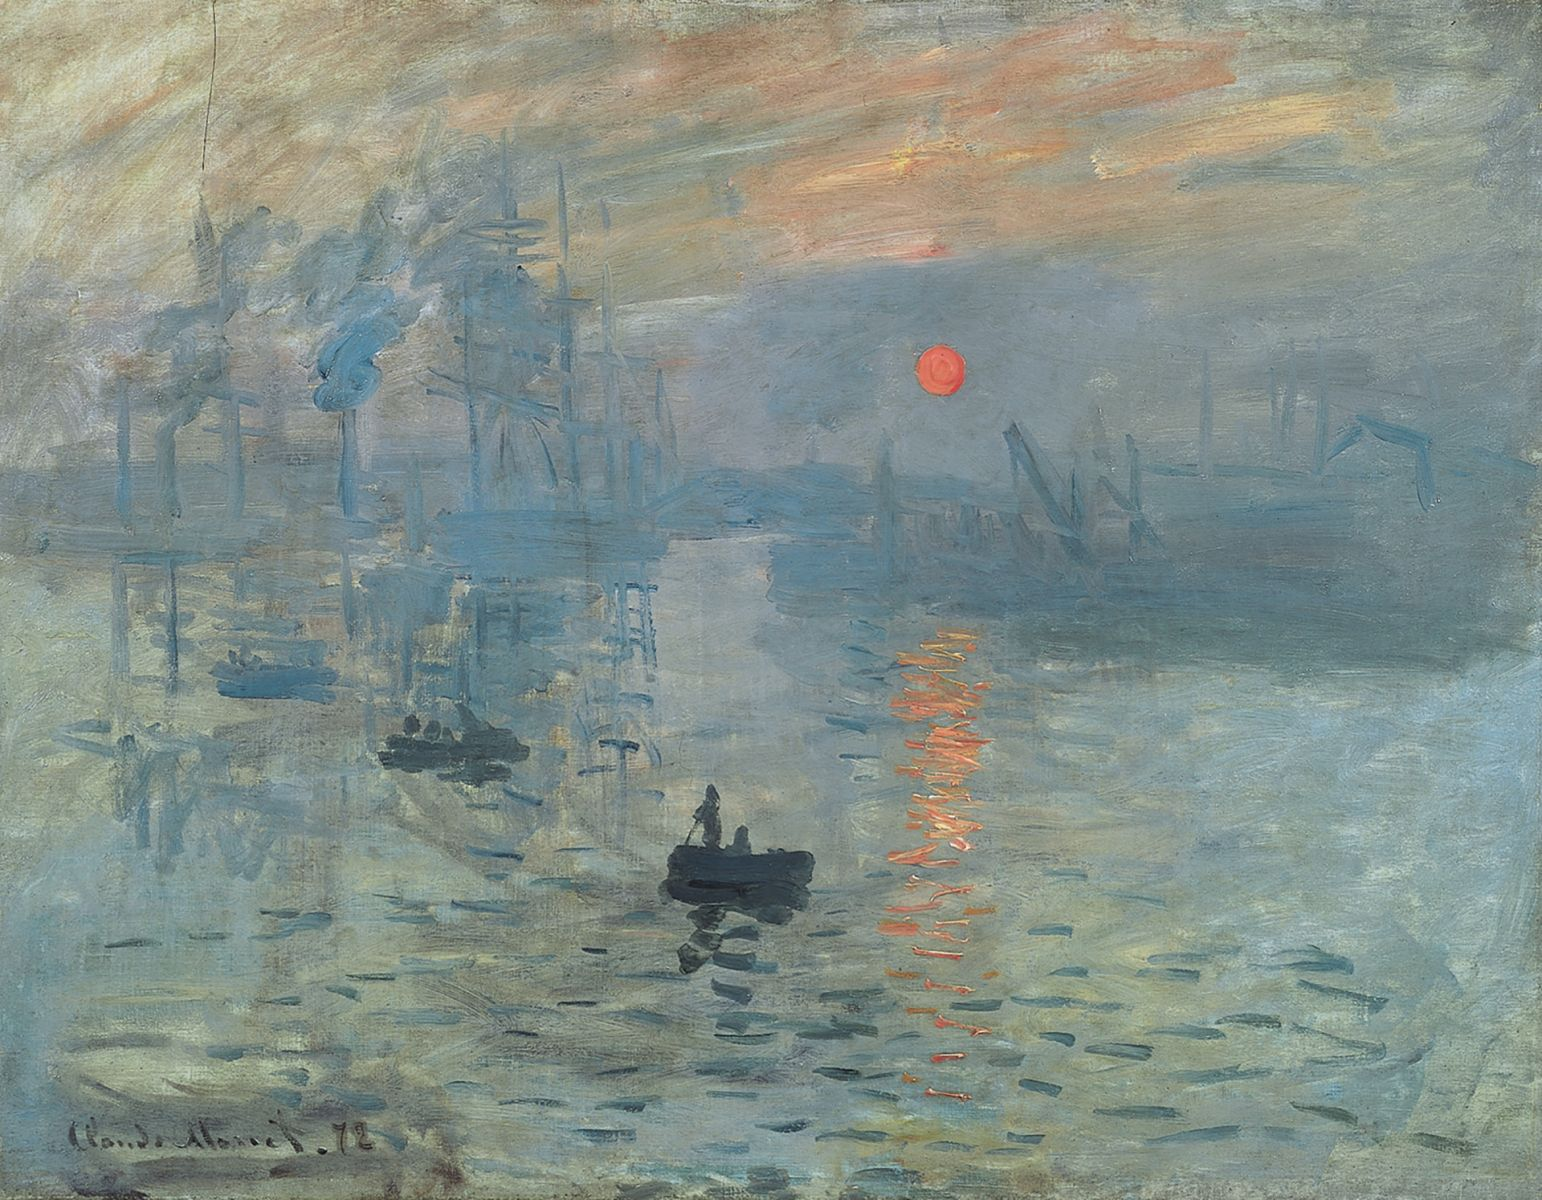 549/Photos/Paris/Claude_Monet_Impression_soleil_levant-optimisee.jpg